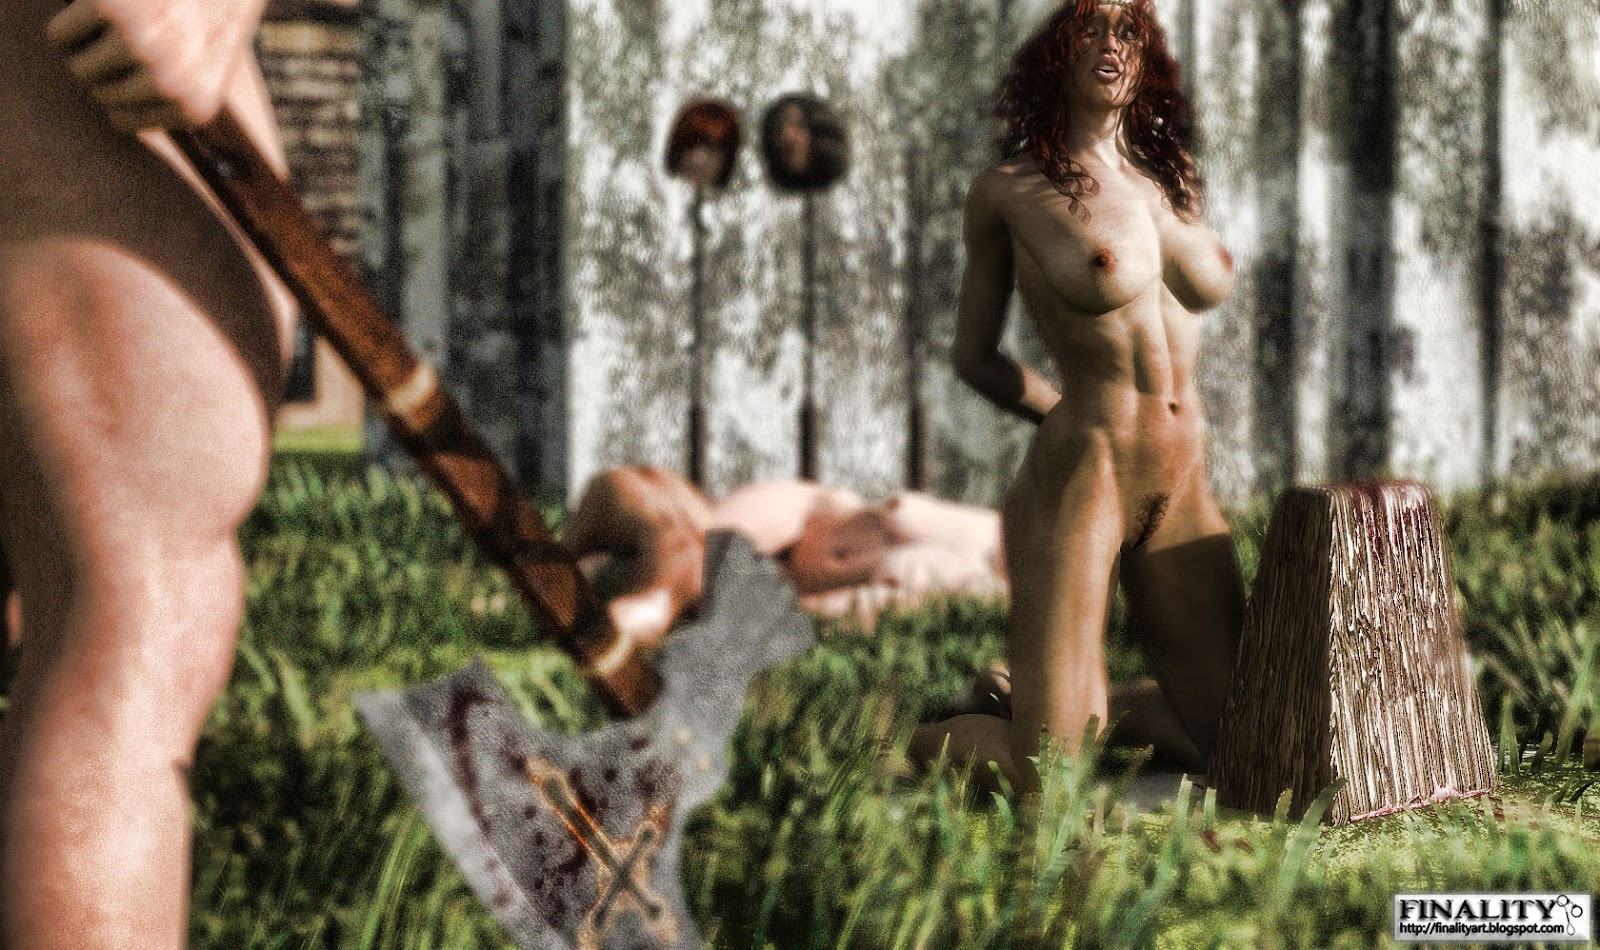 Execution erotic fantasy nude picture